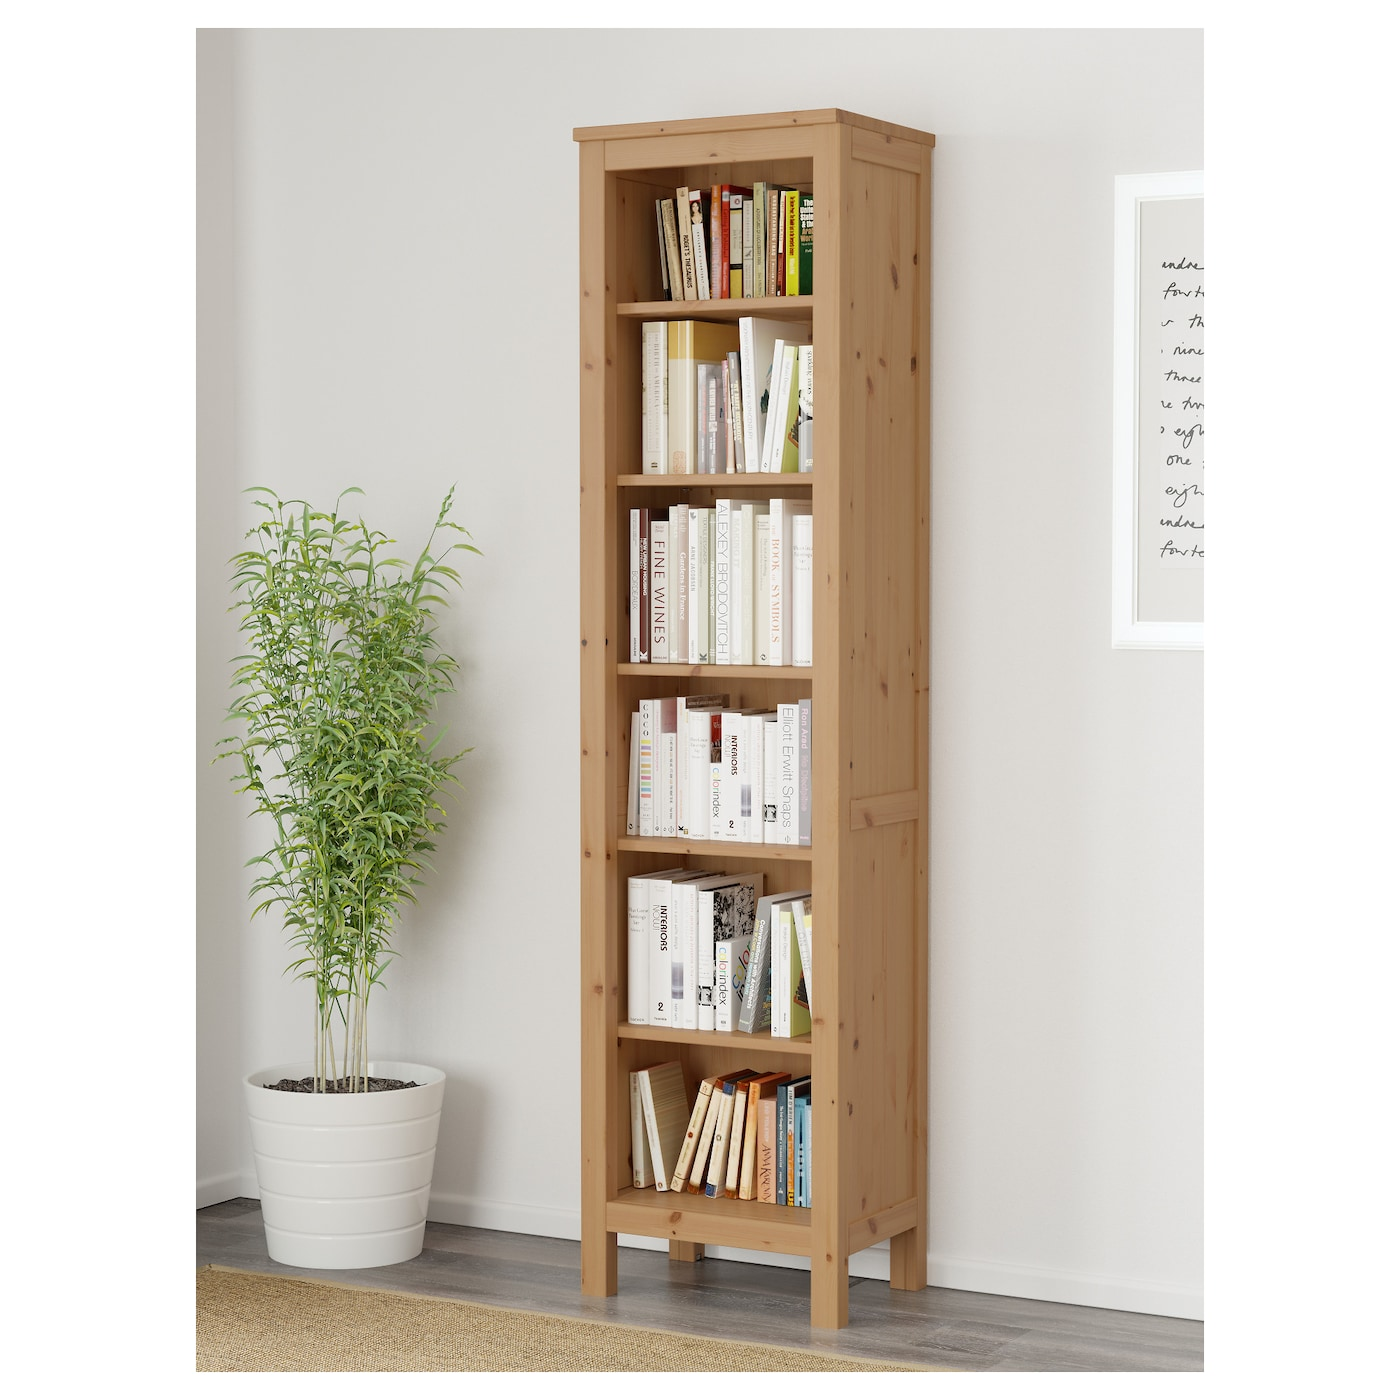 hemnes bookcase light brown 49x197 cm ikea. Black Bedroom Furniture Sets. Home Design Ideas